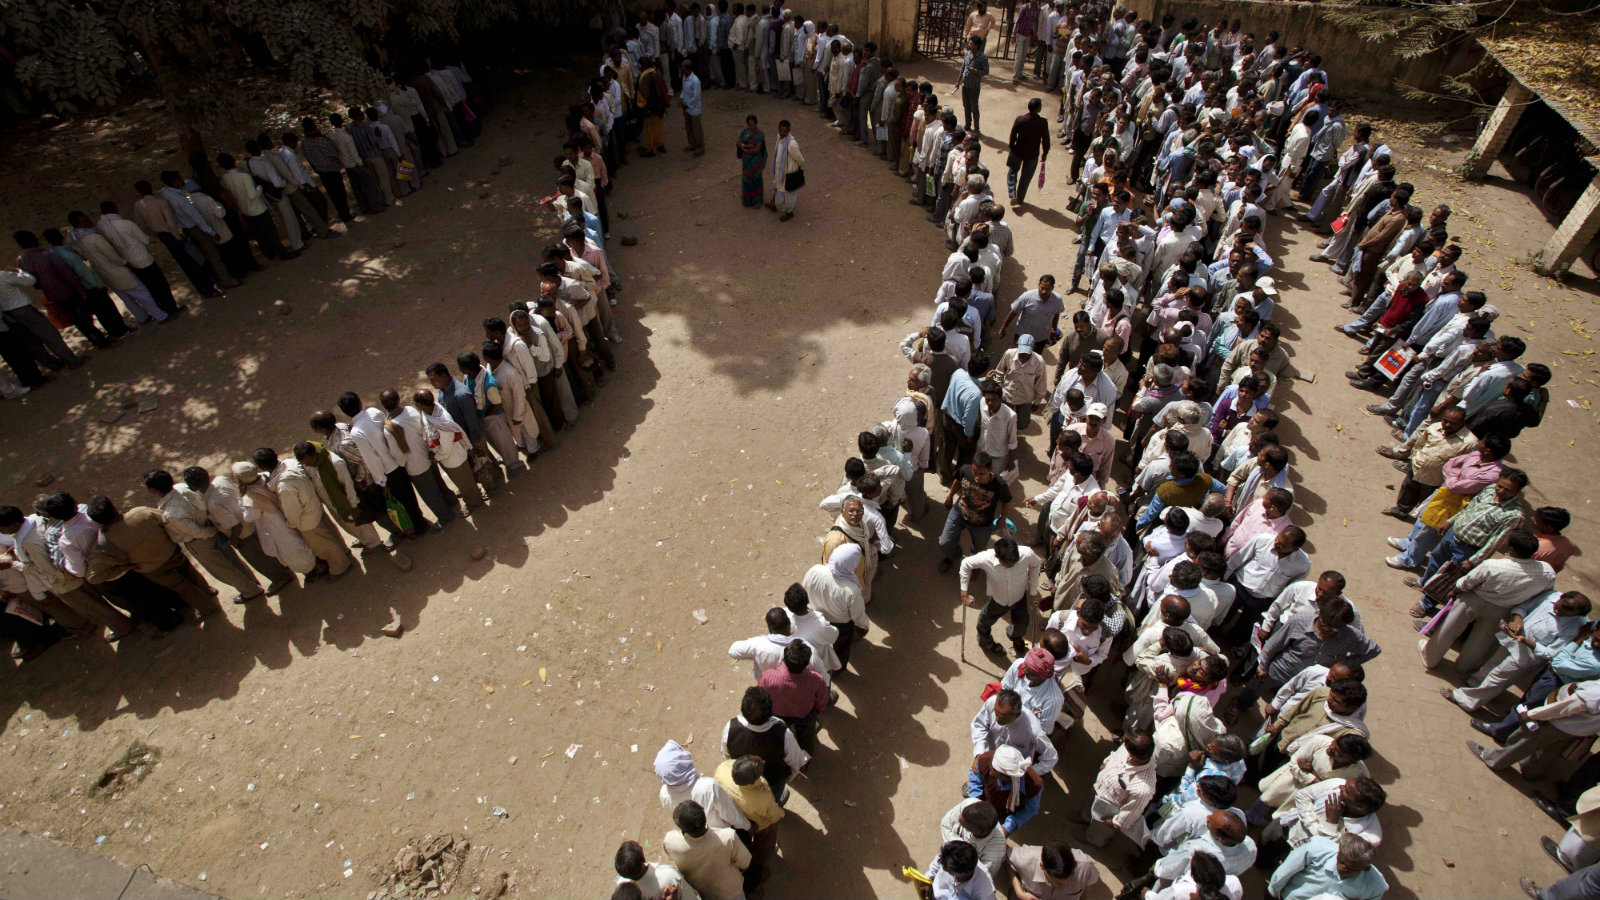 File photo, unemployed Indians stand in a queue to register themselves at the Employment Exchange Office in Allahabad, in the northern Indian state of Uttar Pradesh.